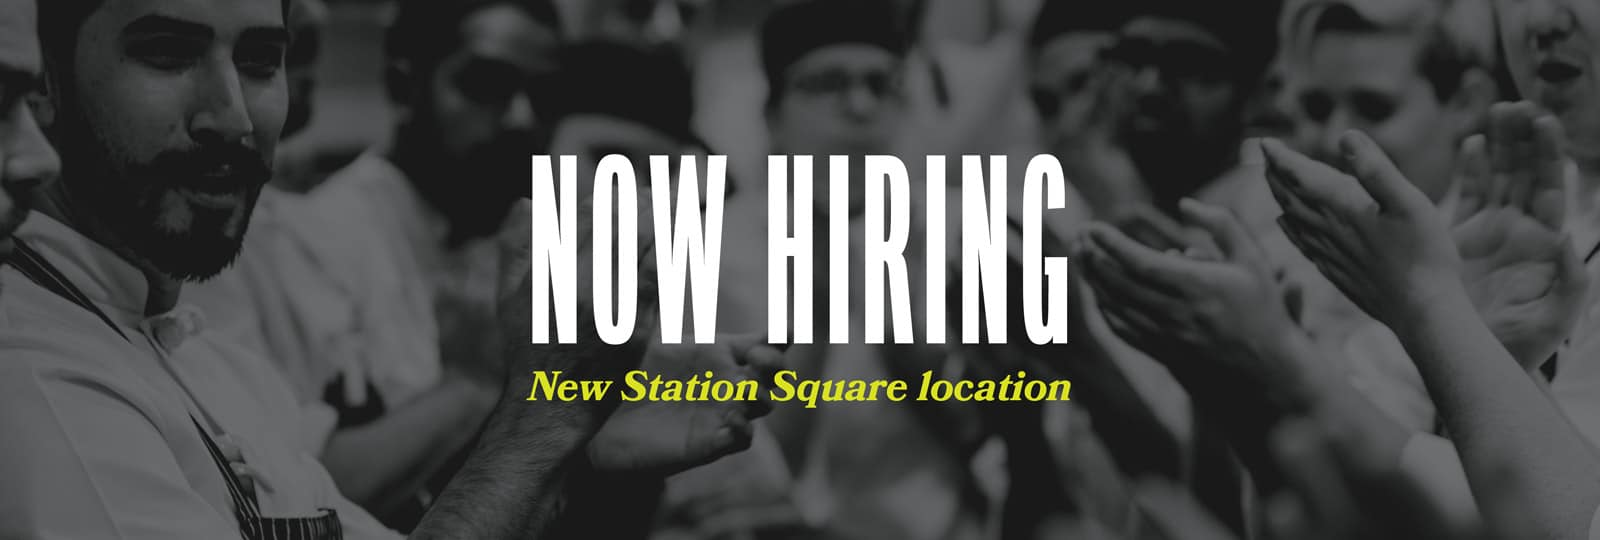 Hiring Fair April 30 - new Station Square, Burnaby location.